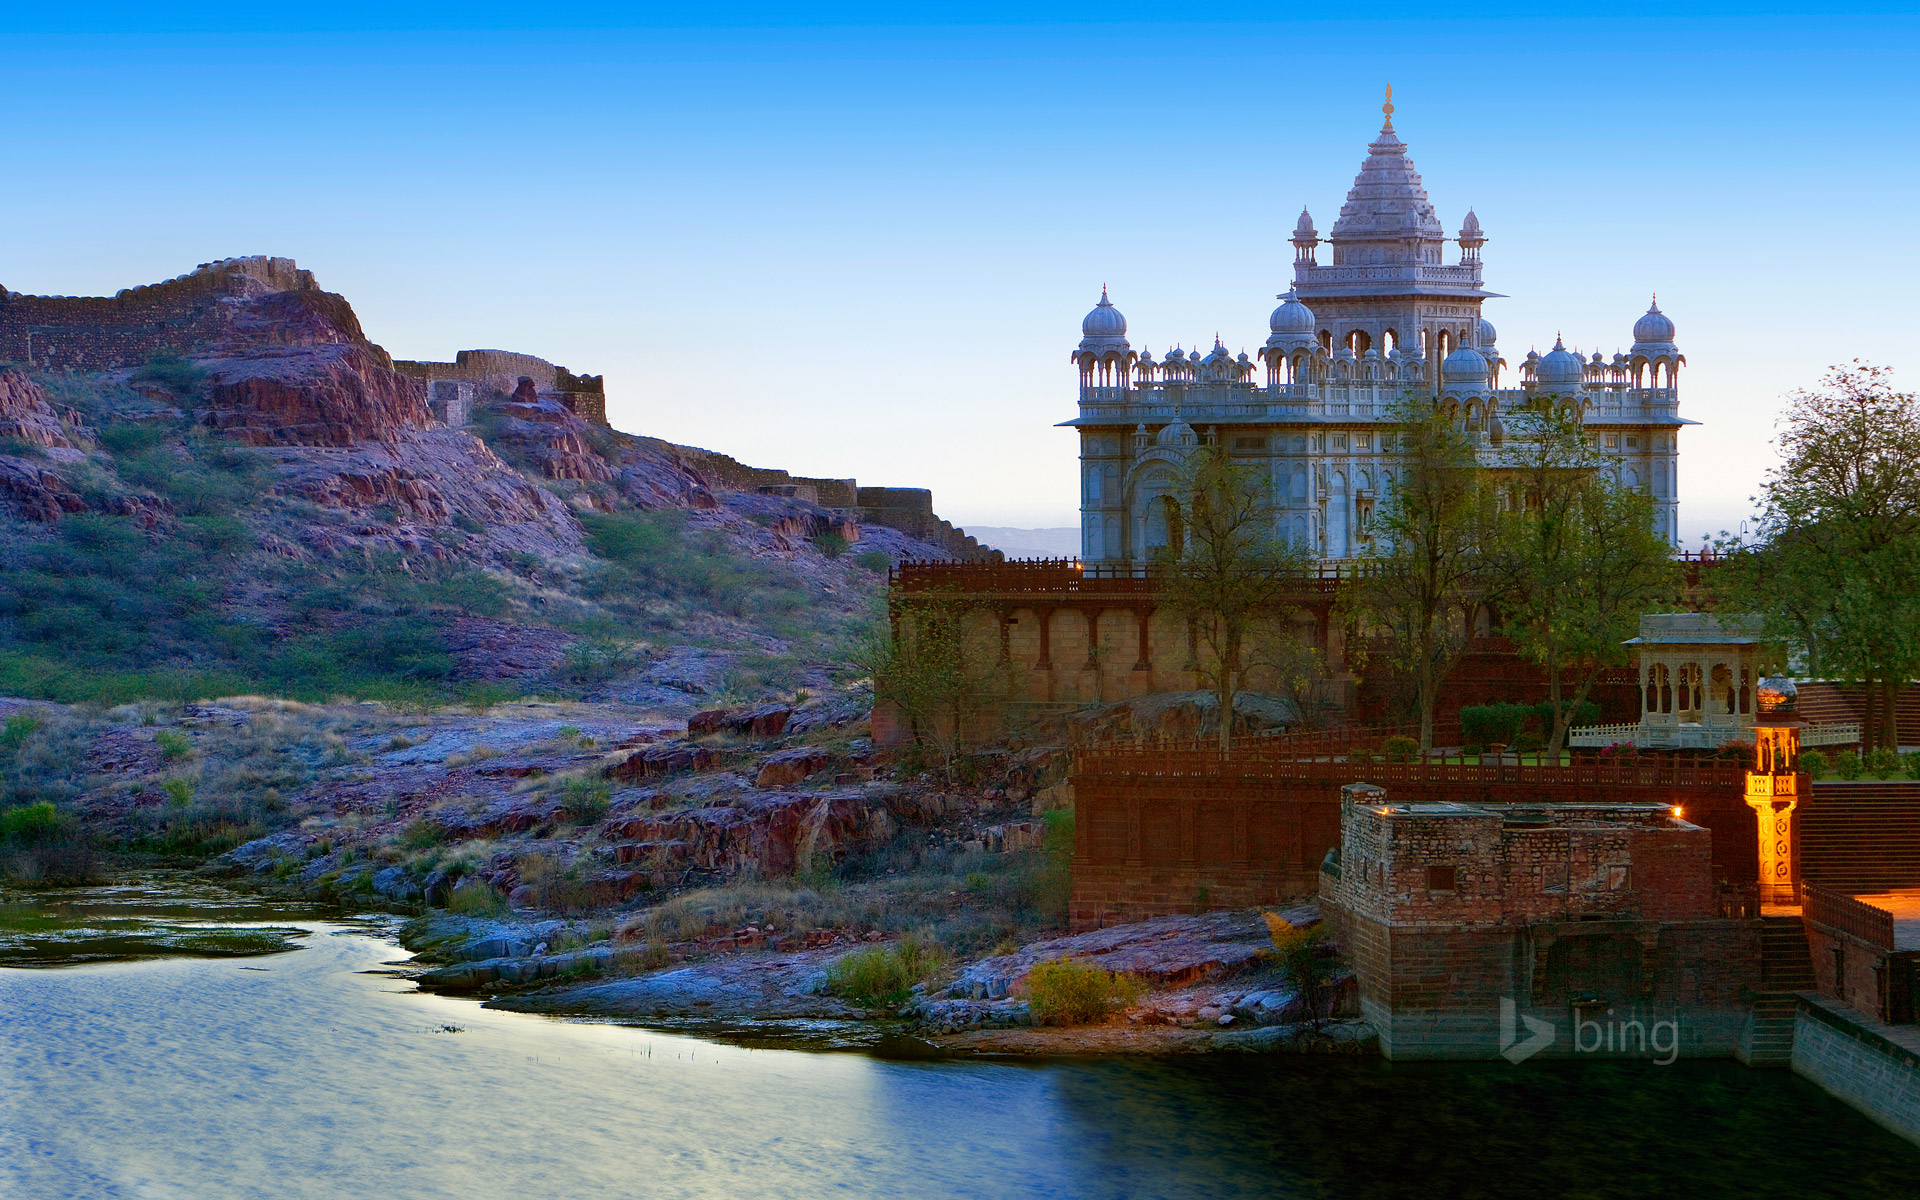 Jaswant Thada in Jodhpur, India